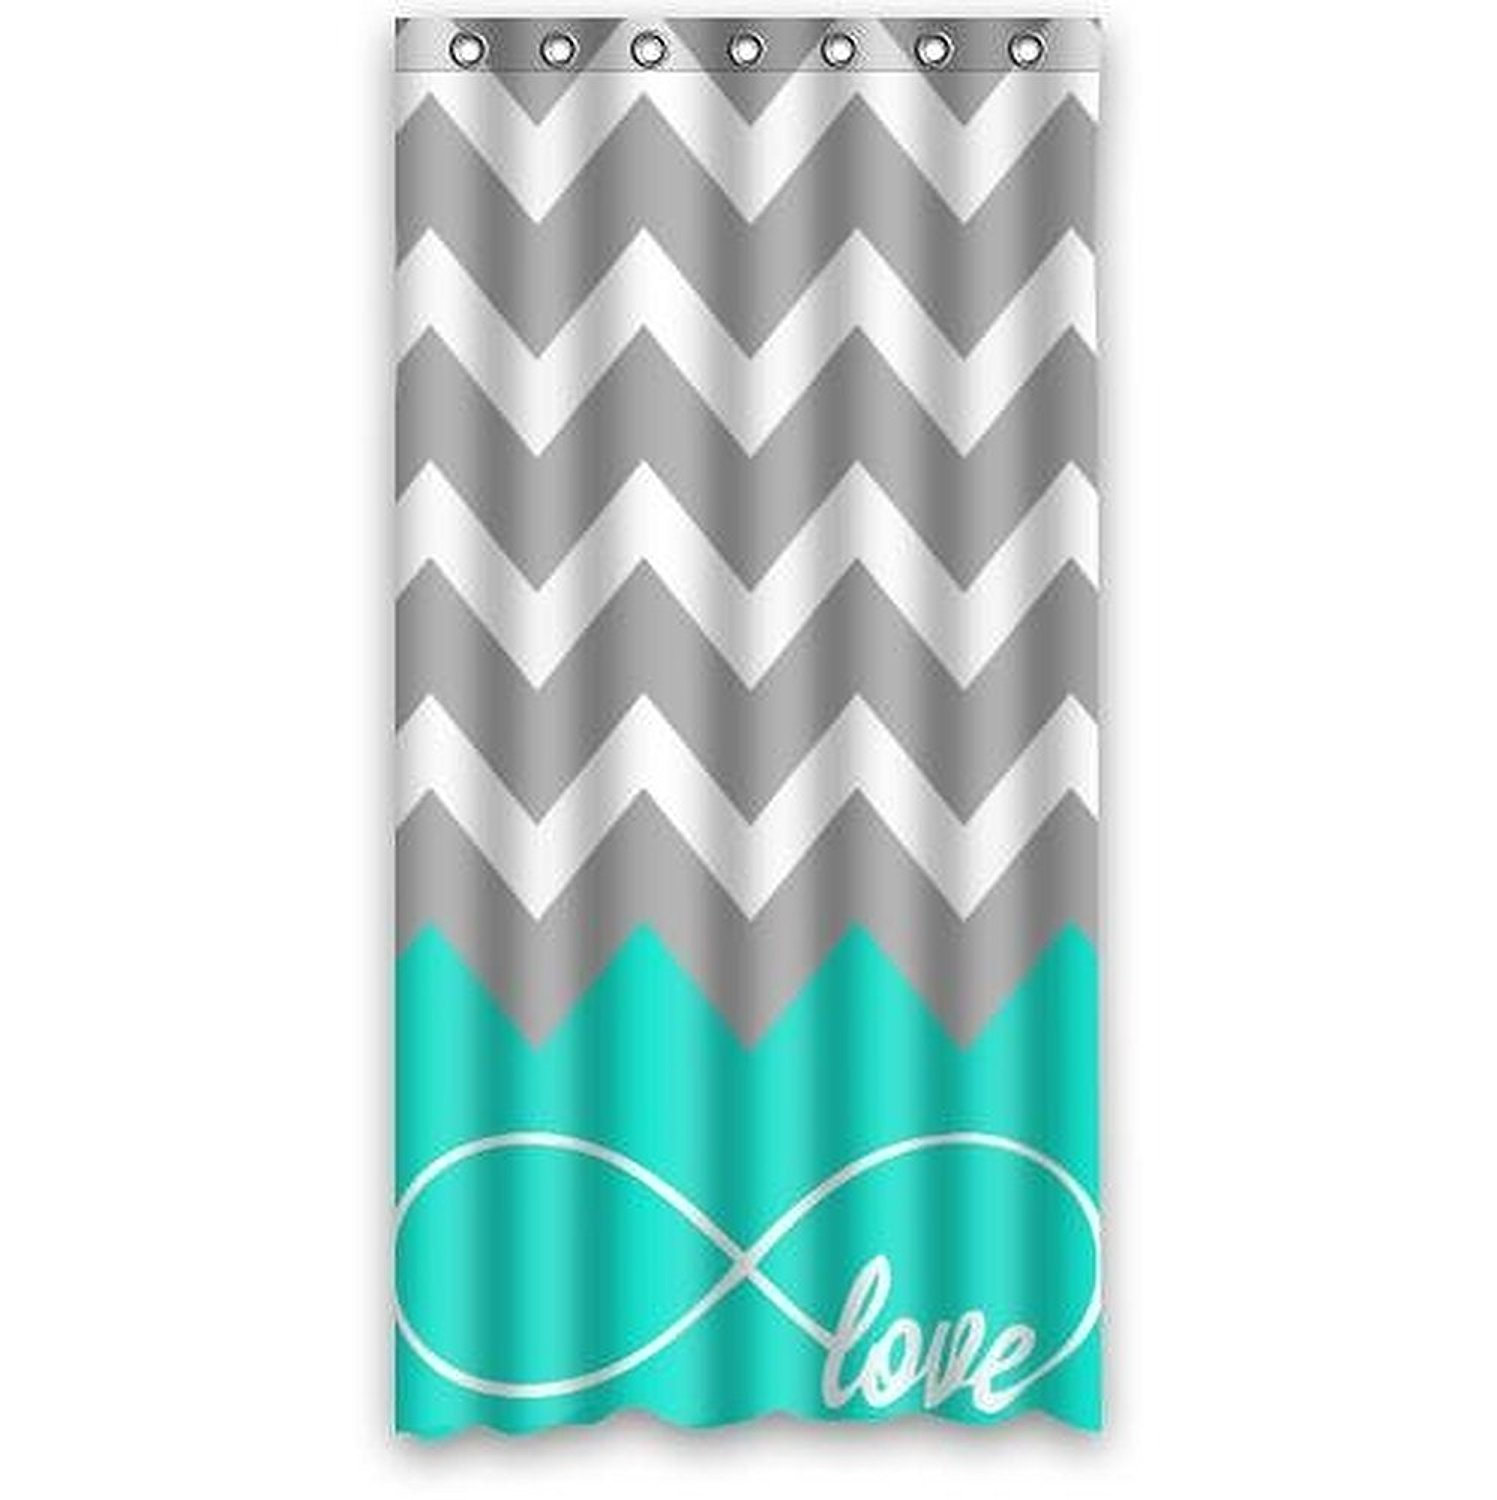 Us 18 86 30 Off Love Infinity Forever Love Symbol Chevron Pattern Turquoise Grey White Waterproof Bath Fabric Shower Curtain In Shower Curtains From